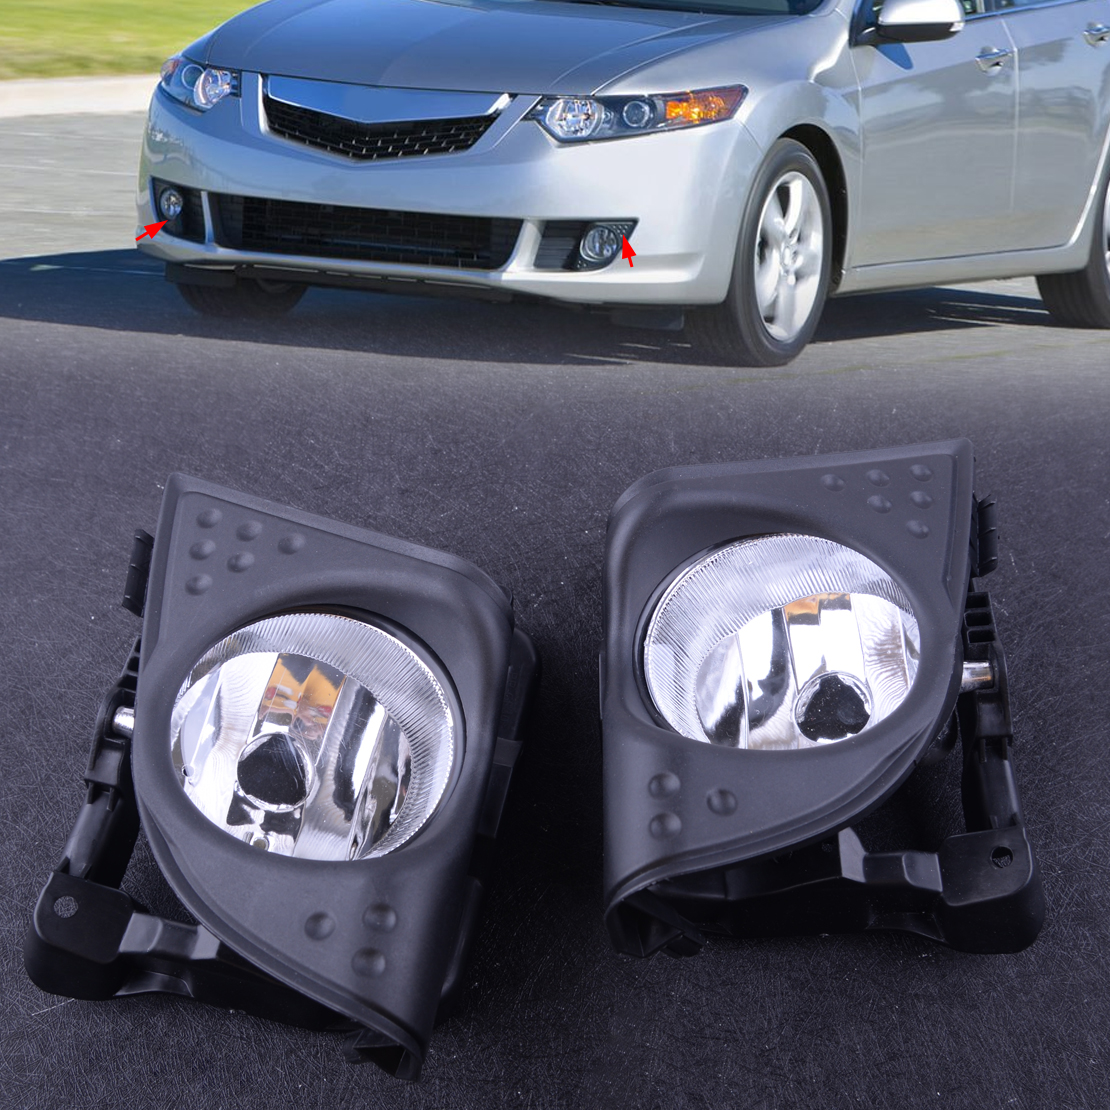 DWCX 1 Pair Car Left Right Front Fog Driving Light Lamp Cover Trim Frame 33900TL0A01 33950TL0A01 Fit for Acura TSX 2009 2010